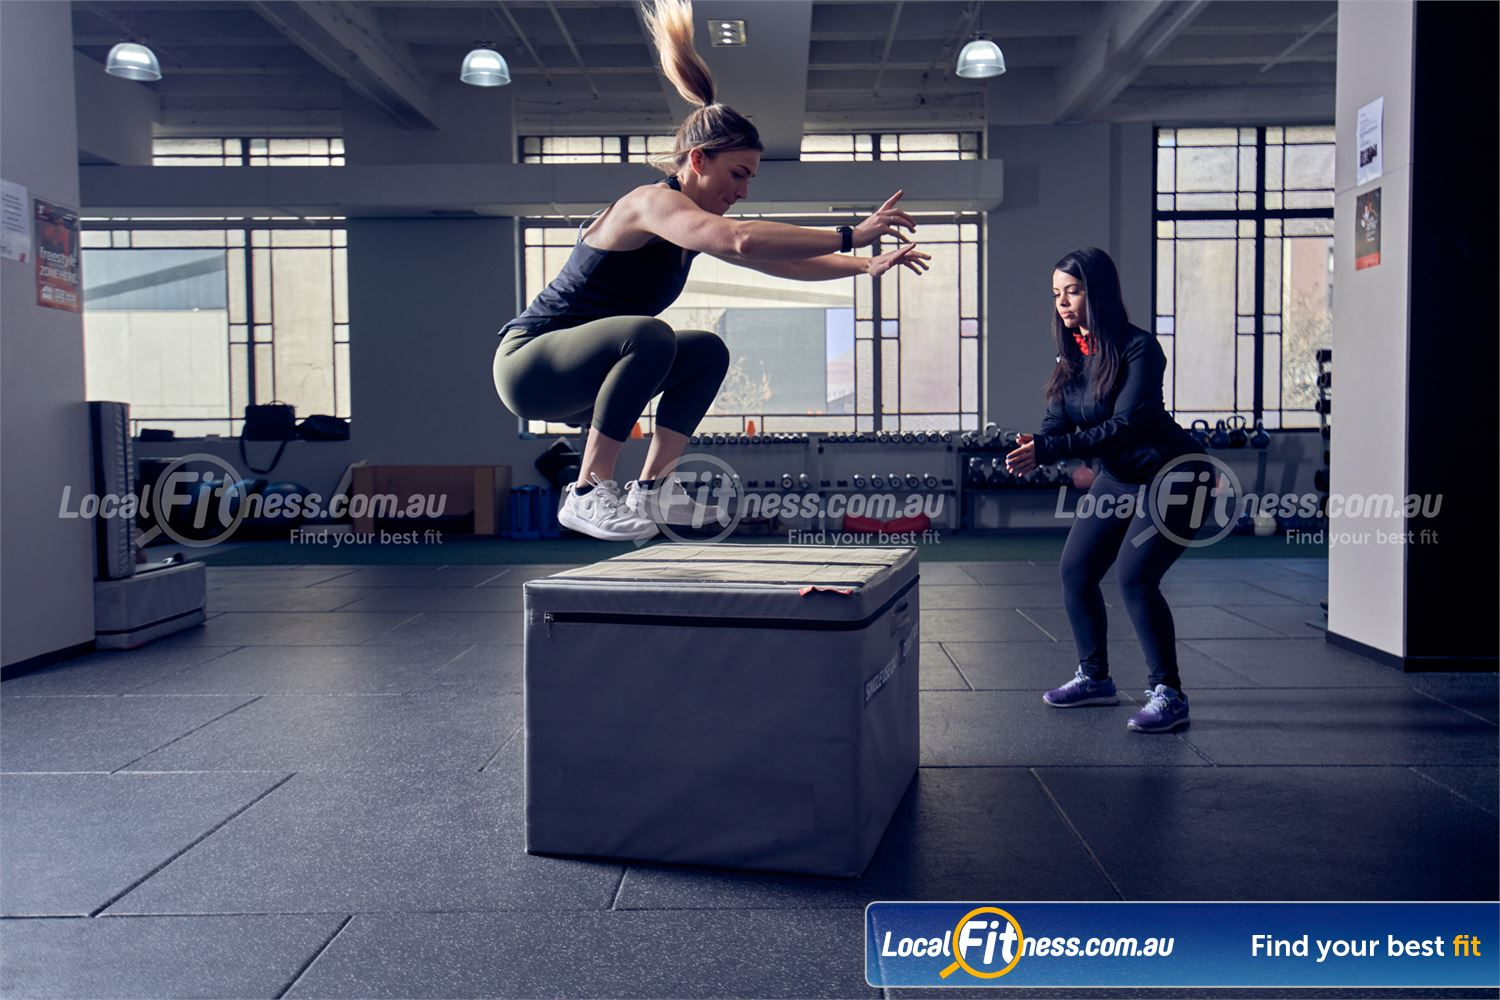 Fitness First Macquarie Near North Ryde Train like an athlete in our Macquarie HIIT gym.